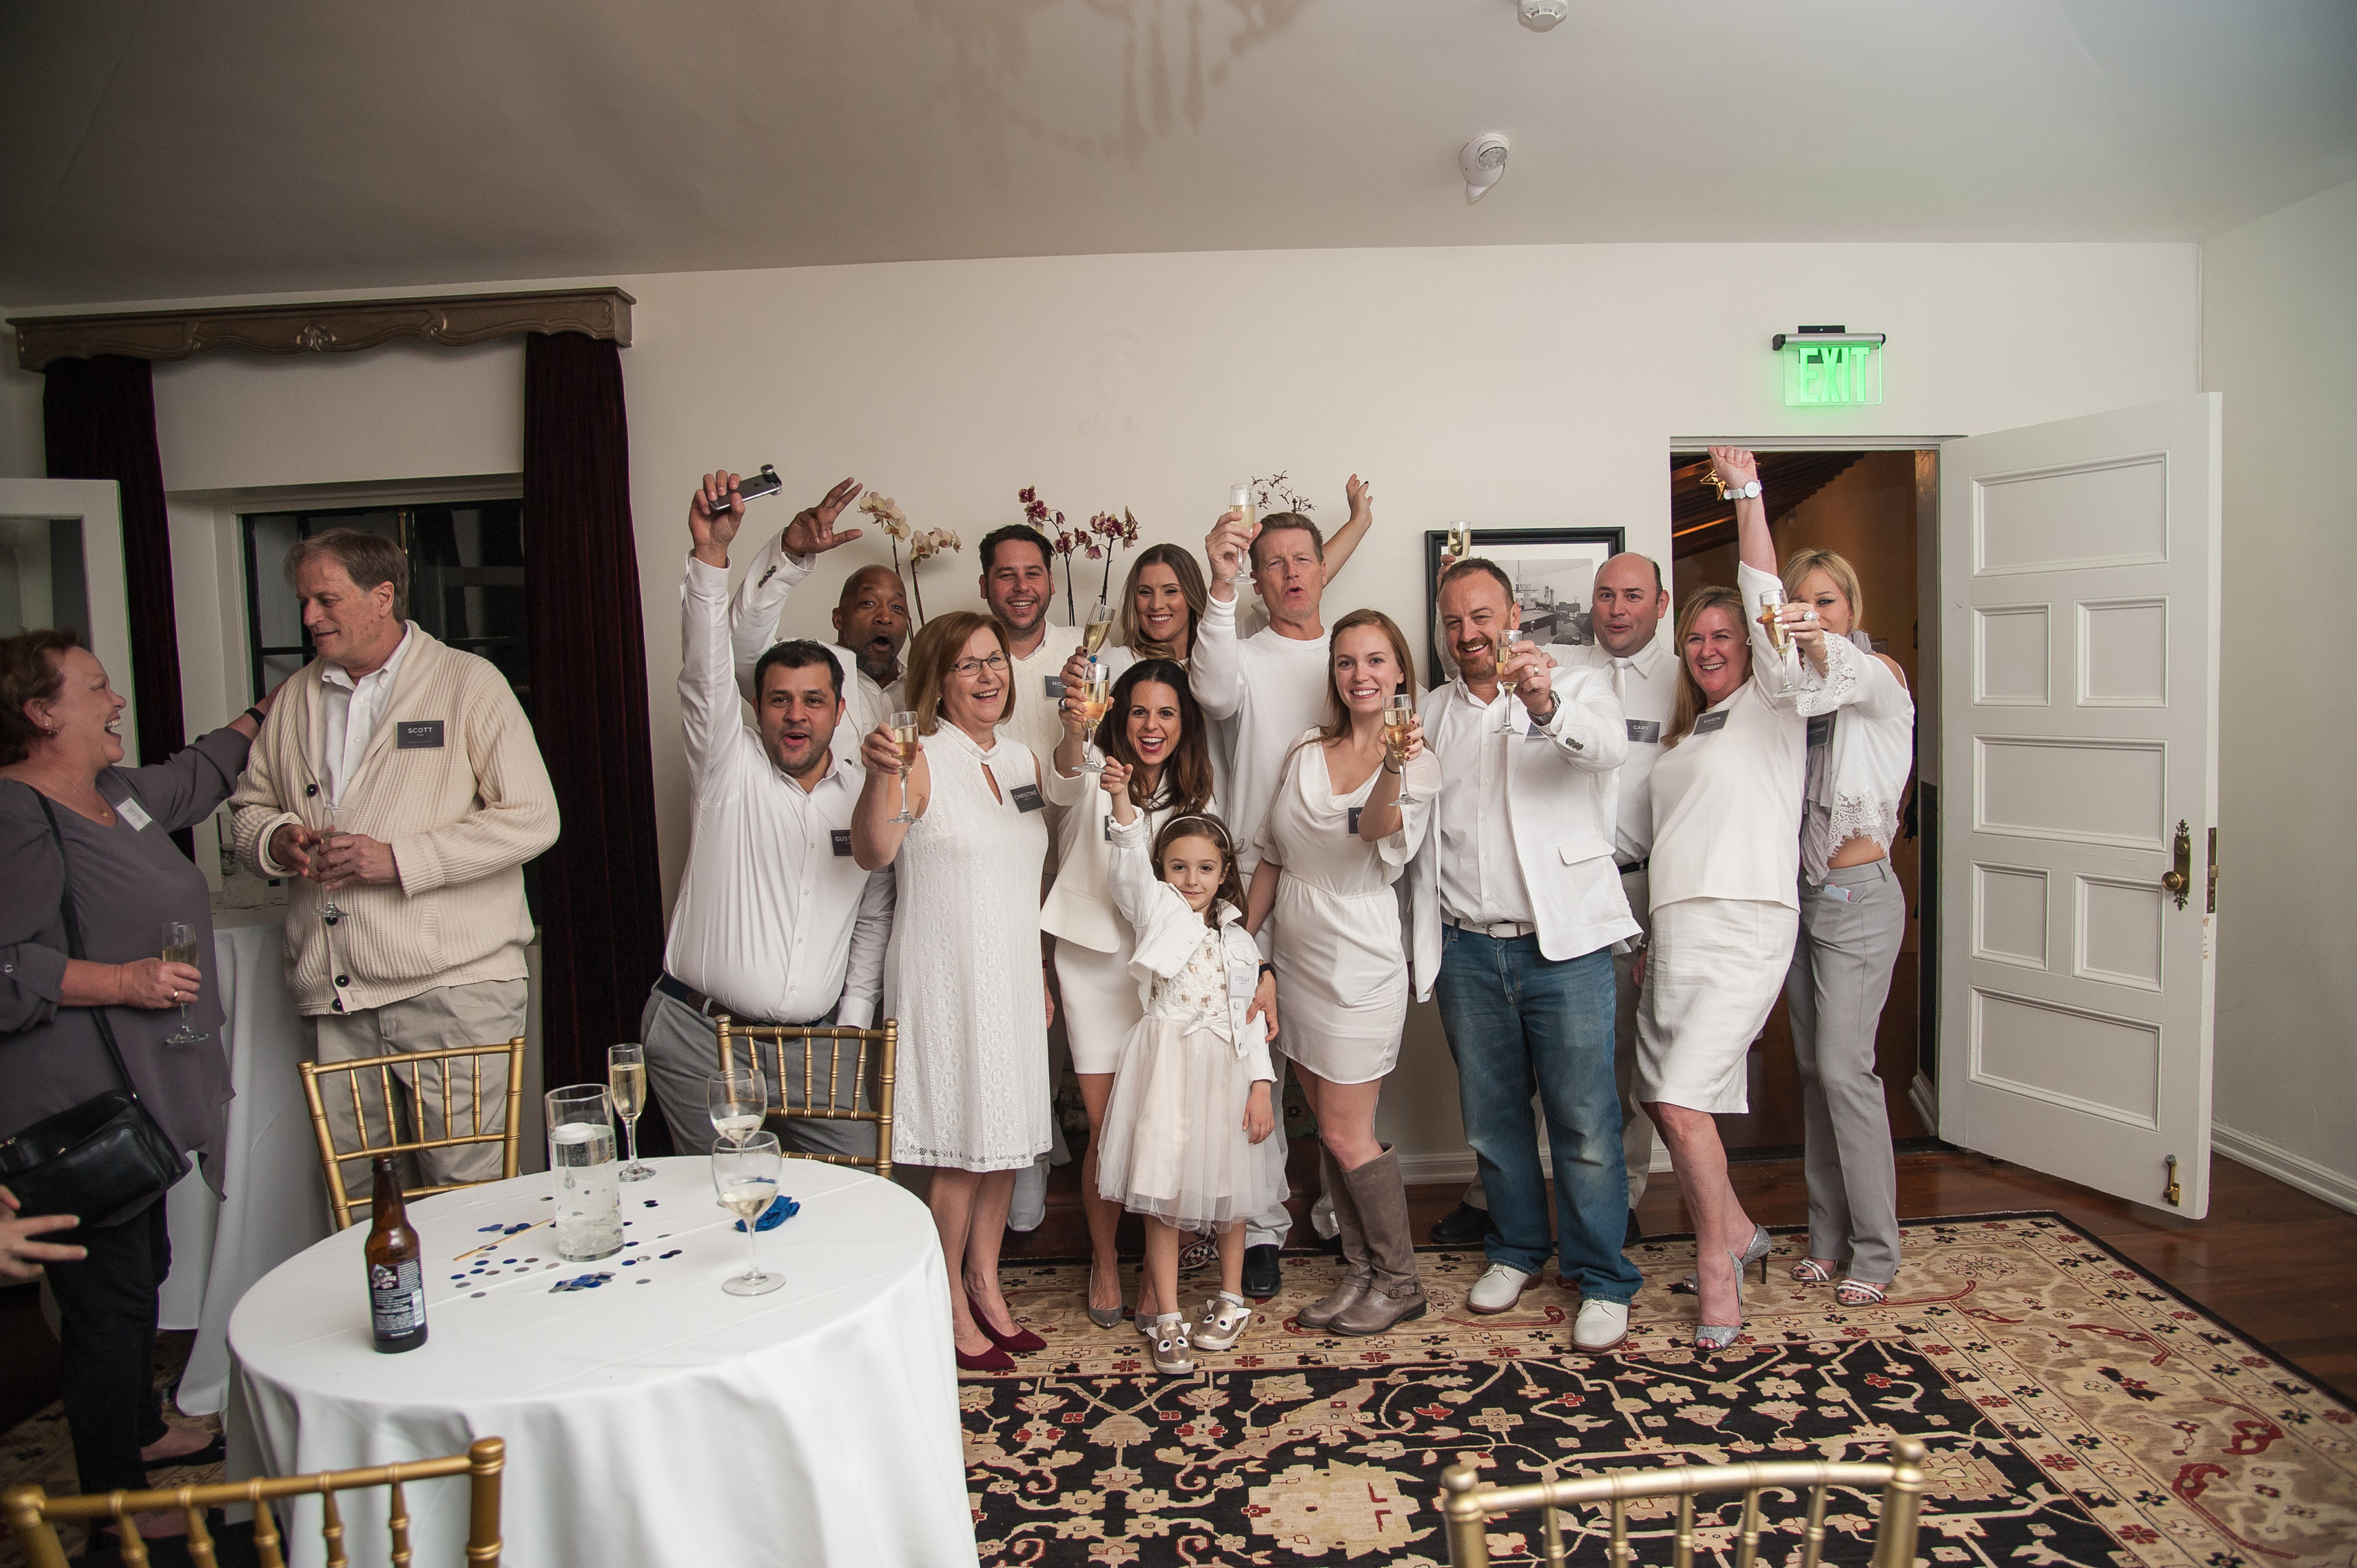 DSC_8154 White Space Party Puts 2017 Into Focus